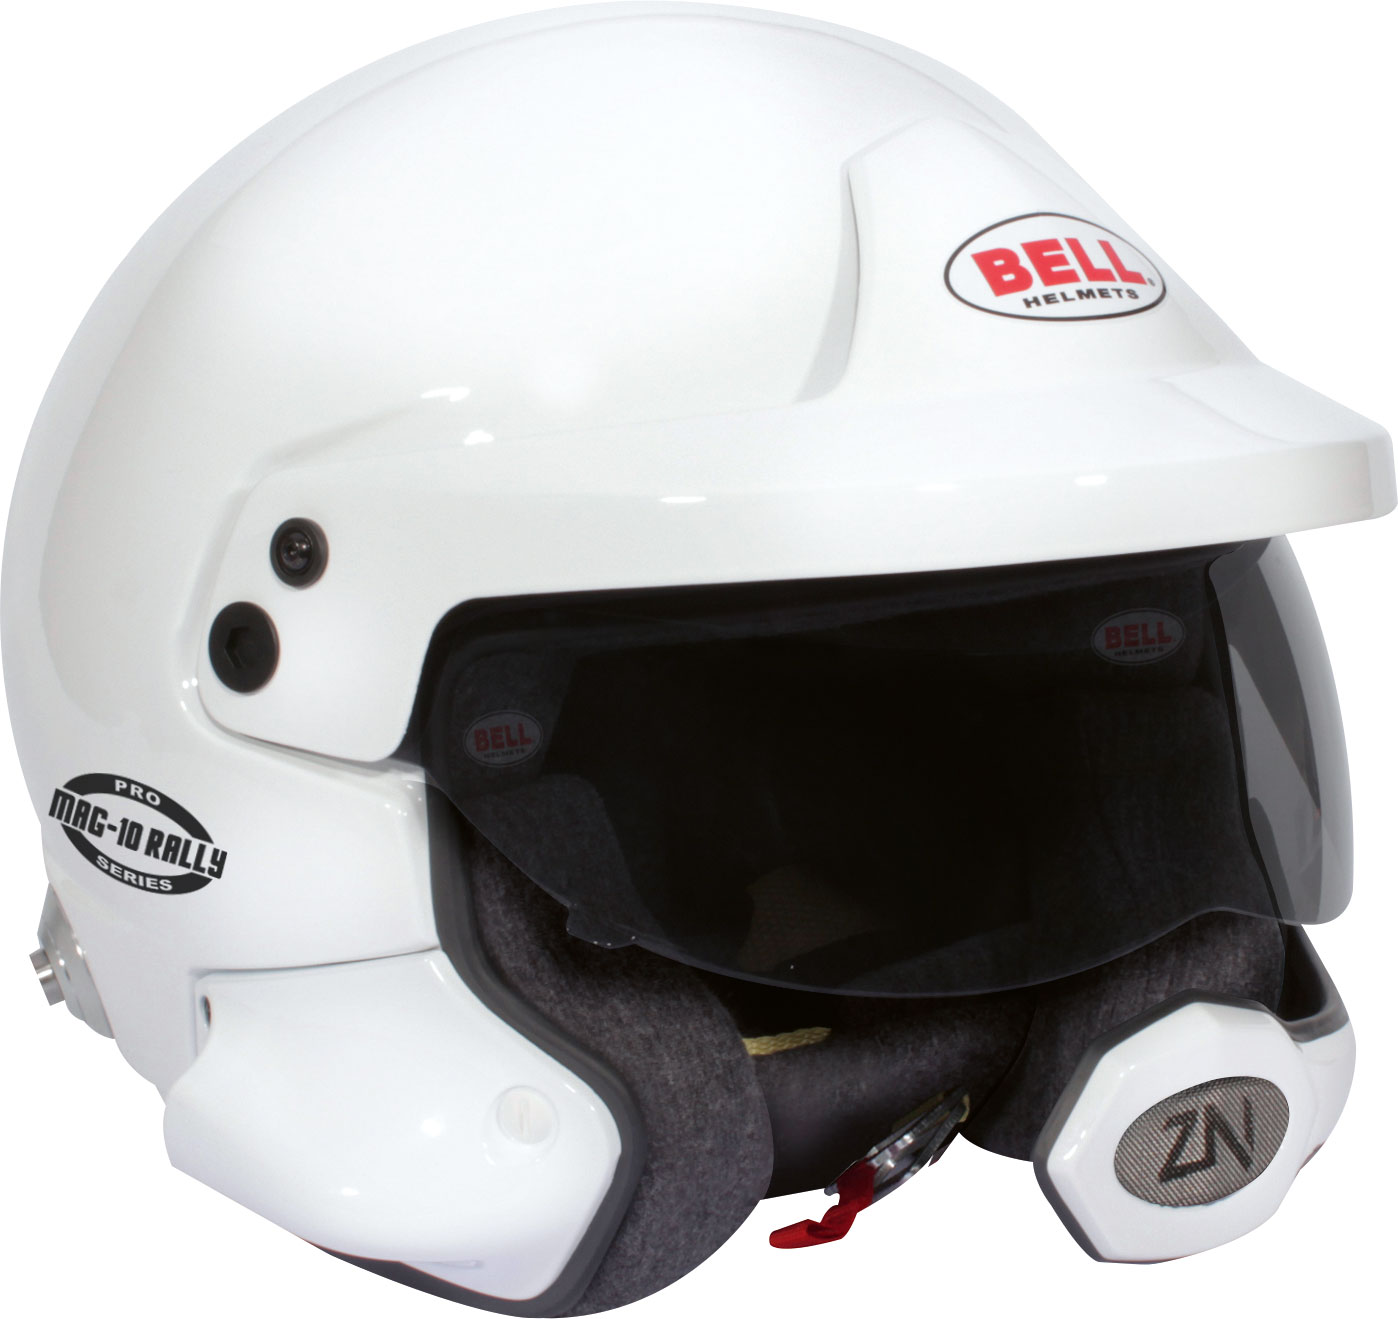 BELL Helm MAG-10 Pro